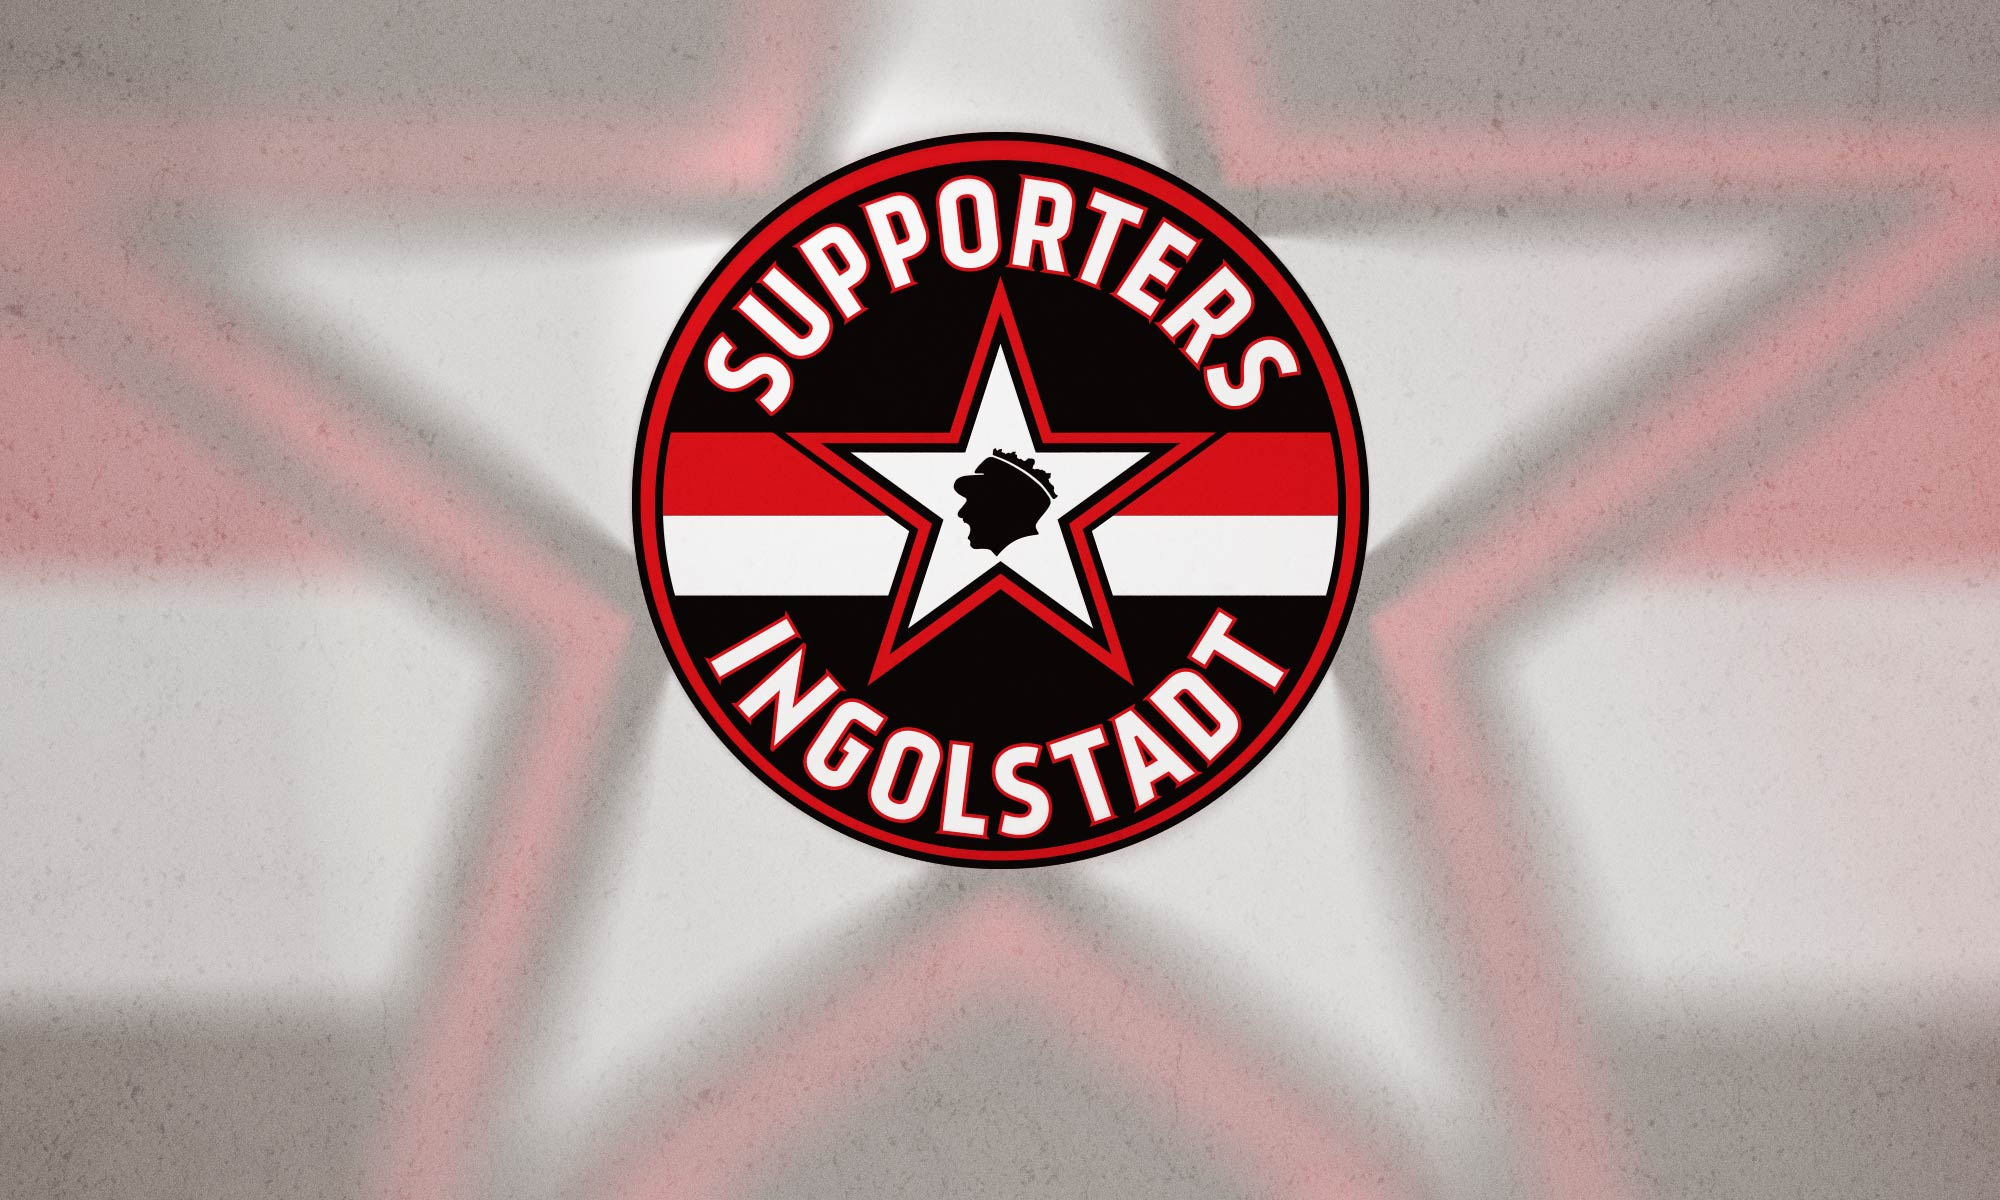 Supporters Ingolstadt